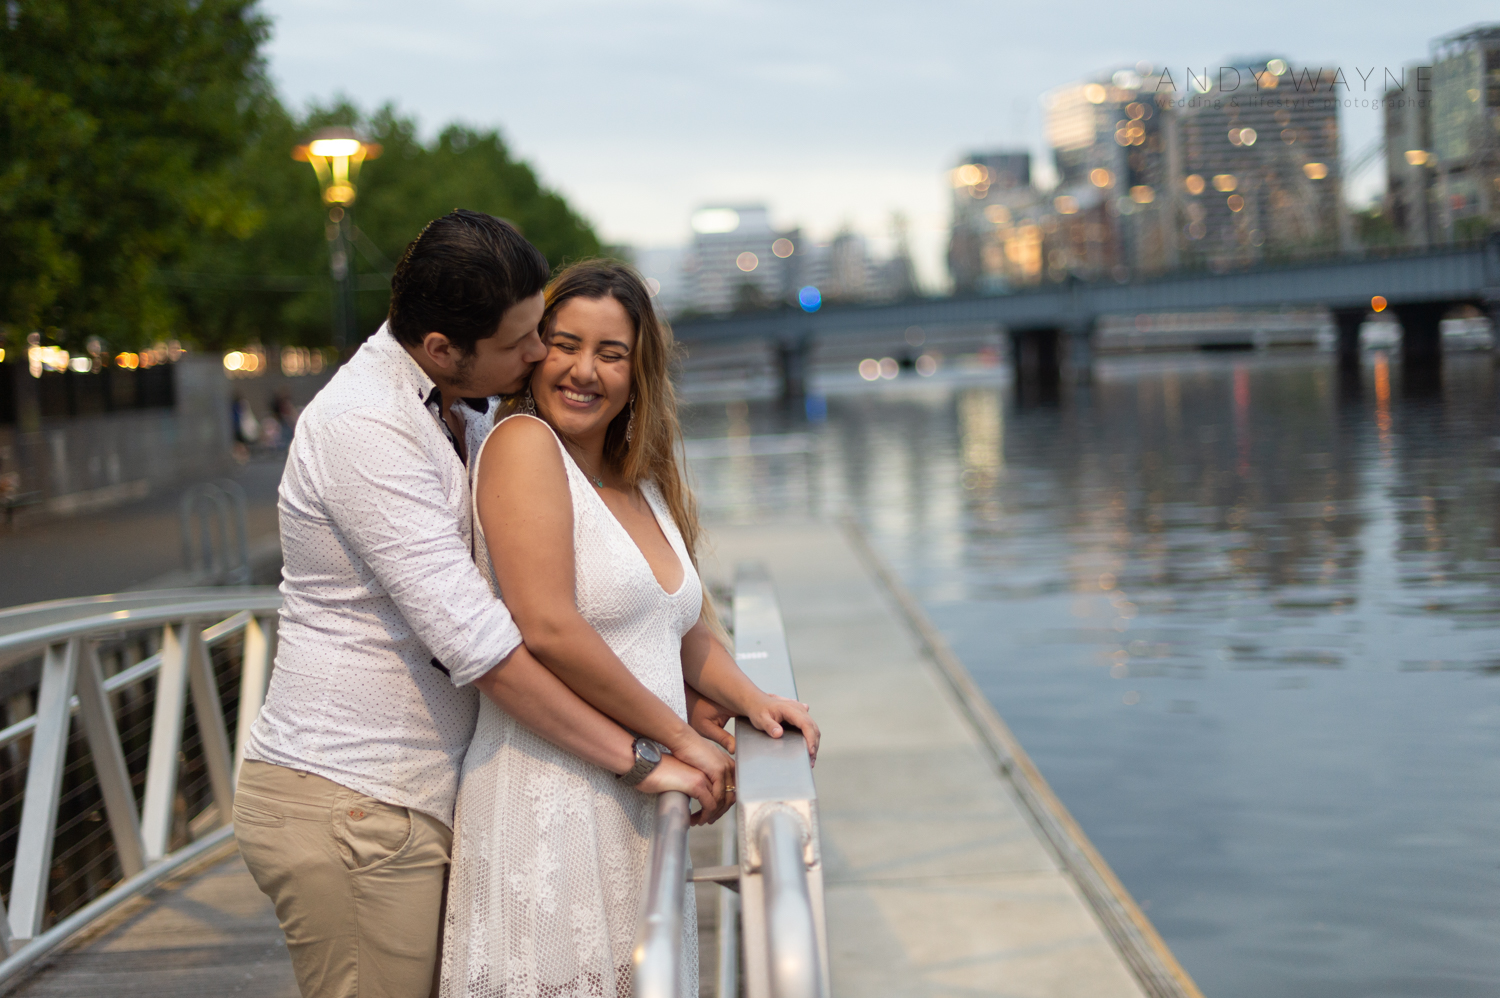 melbourne australia yarra river andy wayne photographer engagement shoot-71.jpg